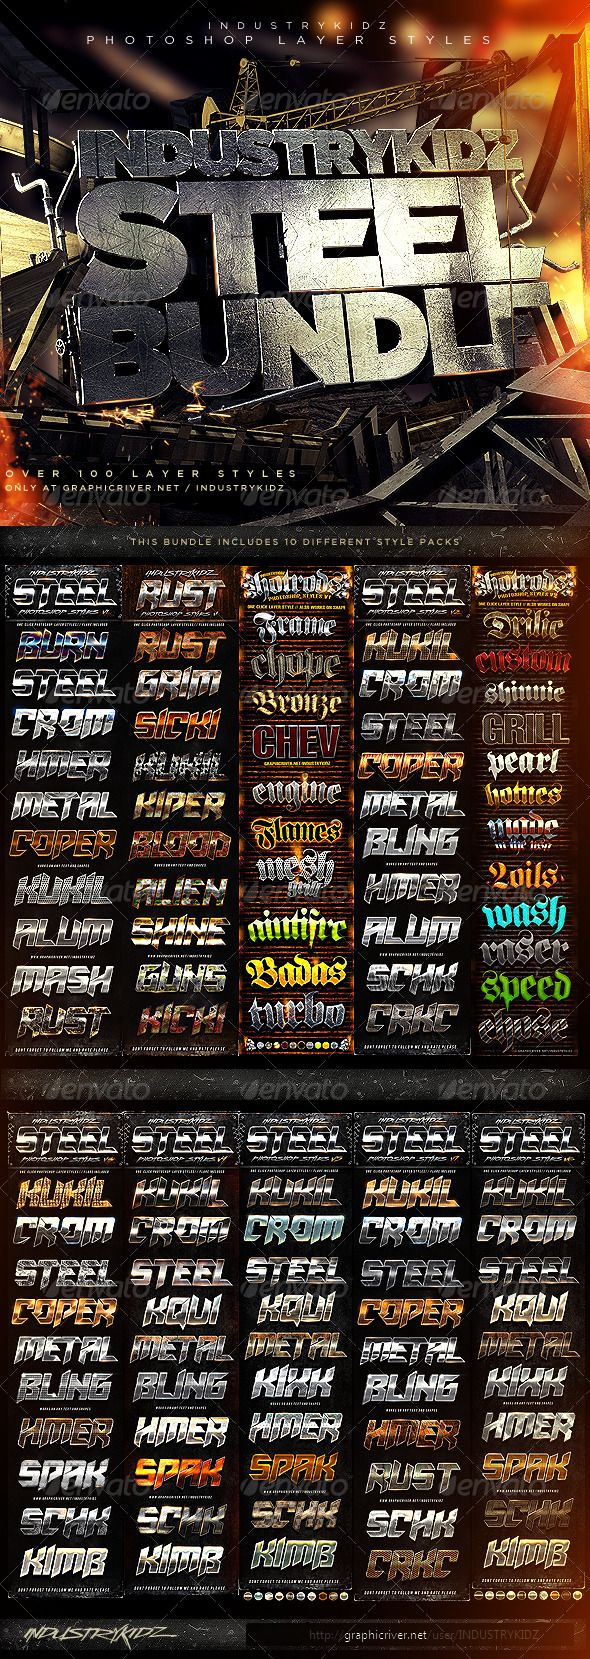 Metal Steel Photoshop Layer Styles Bundle